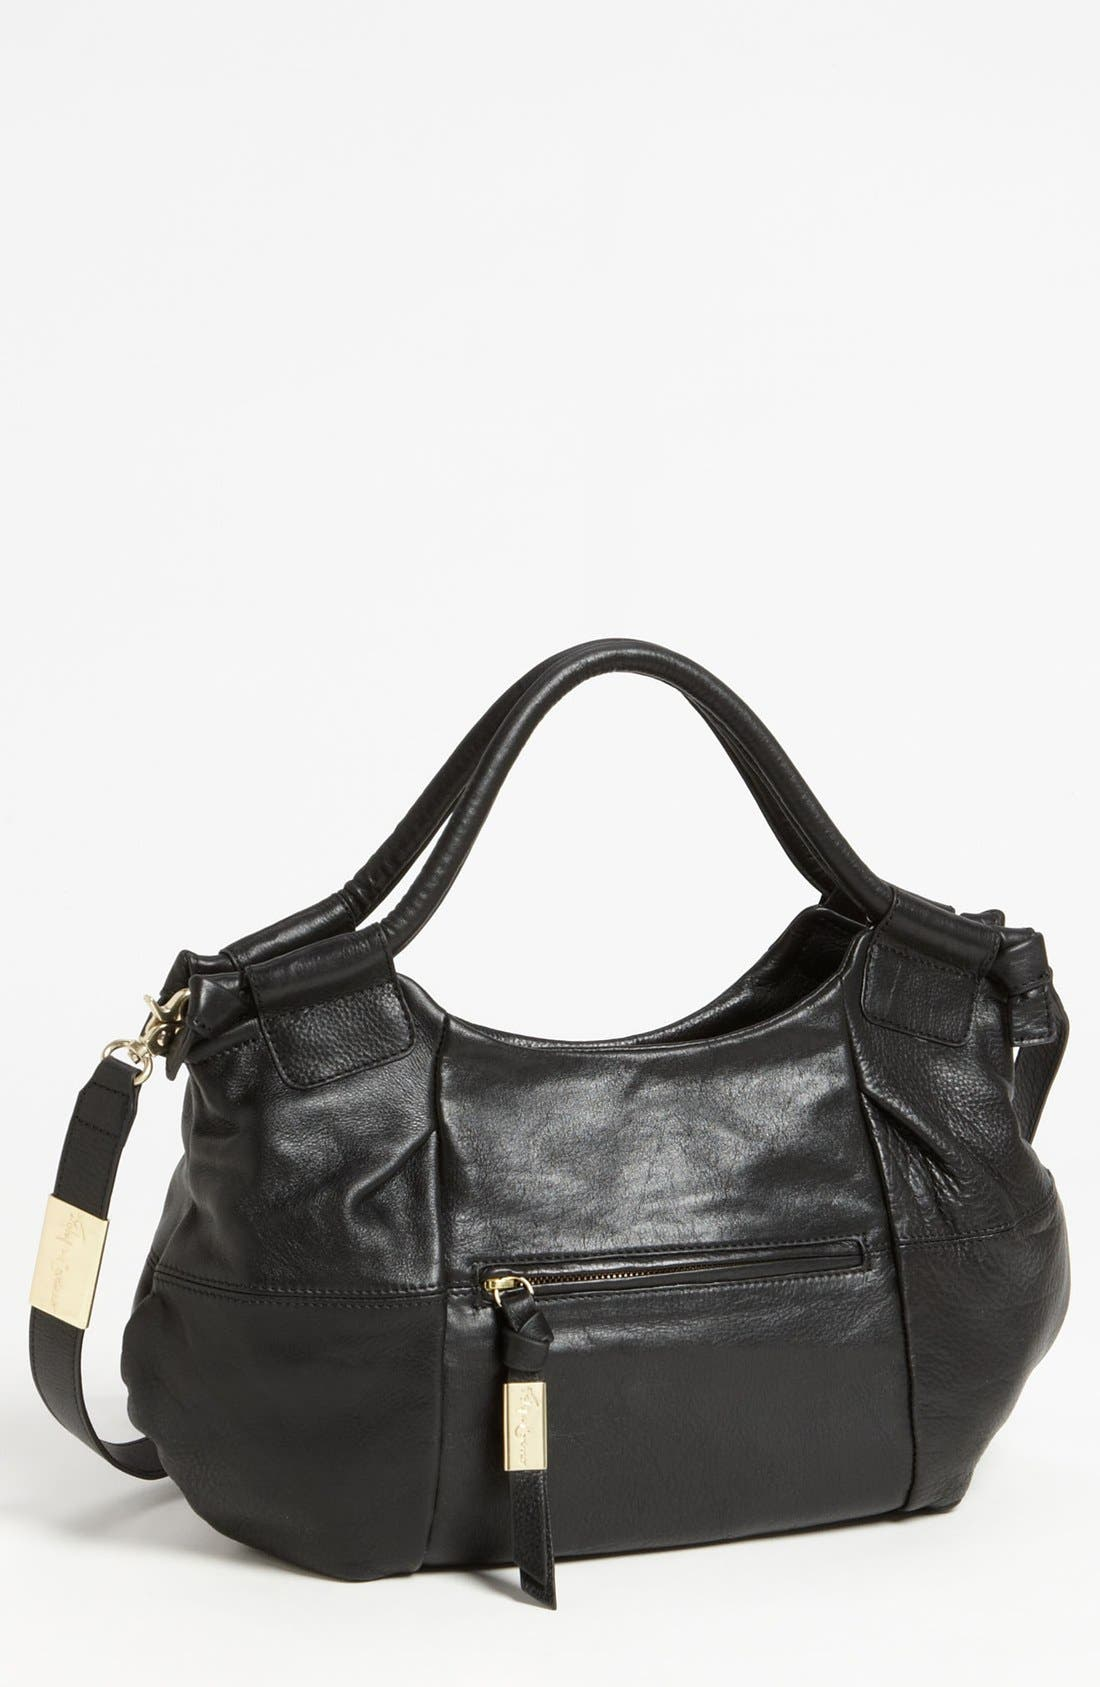 Main Image - Foley + Corinna 'Kami - Mini' Leather Satchel